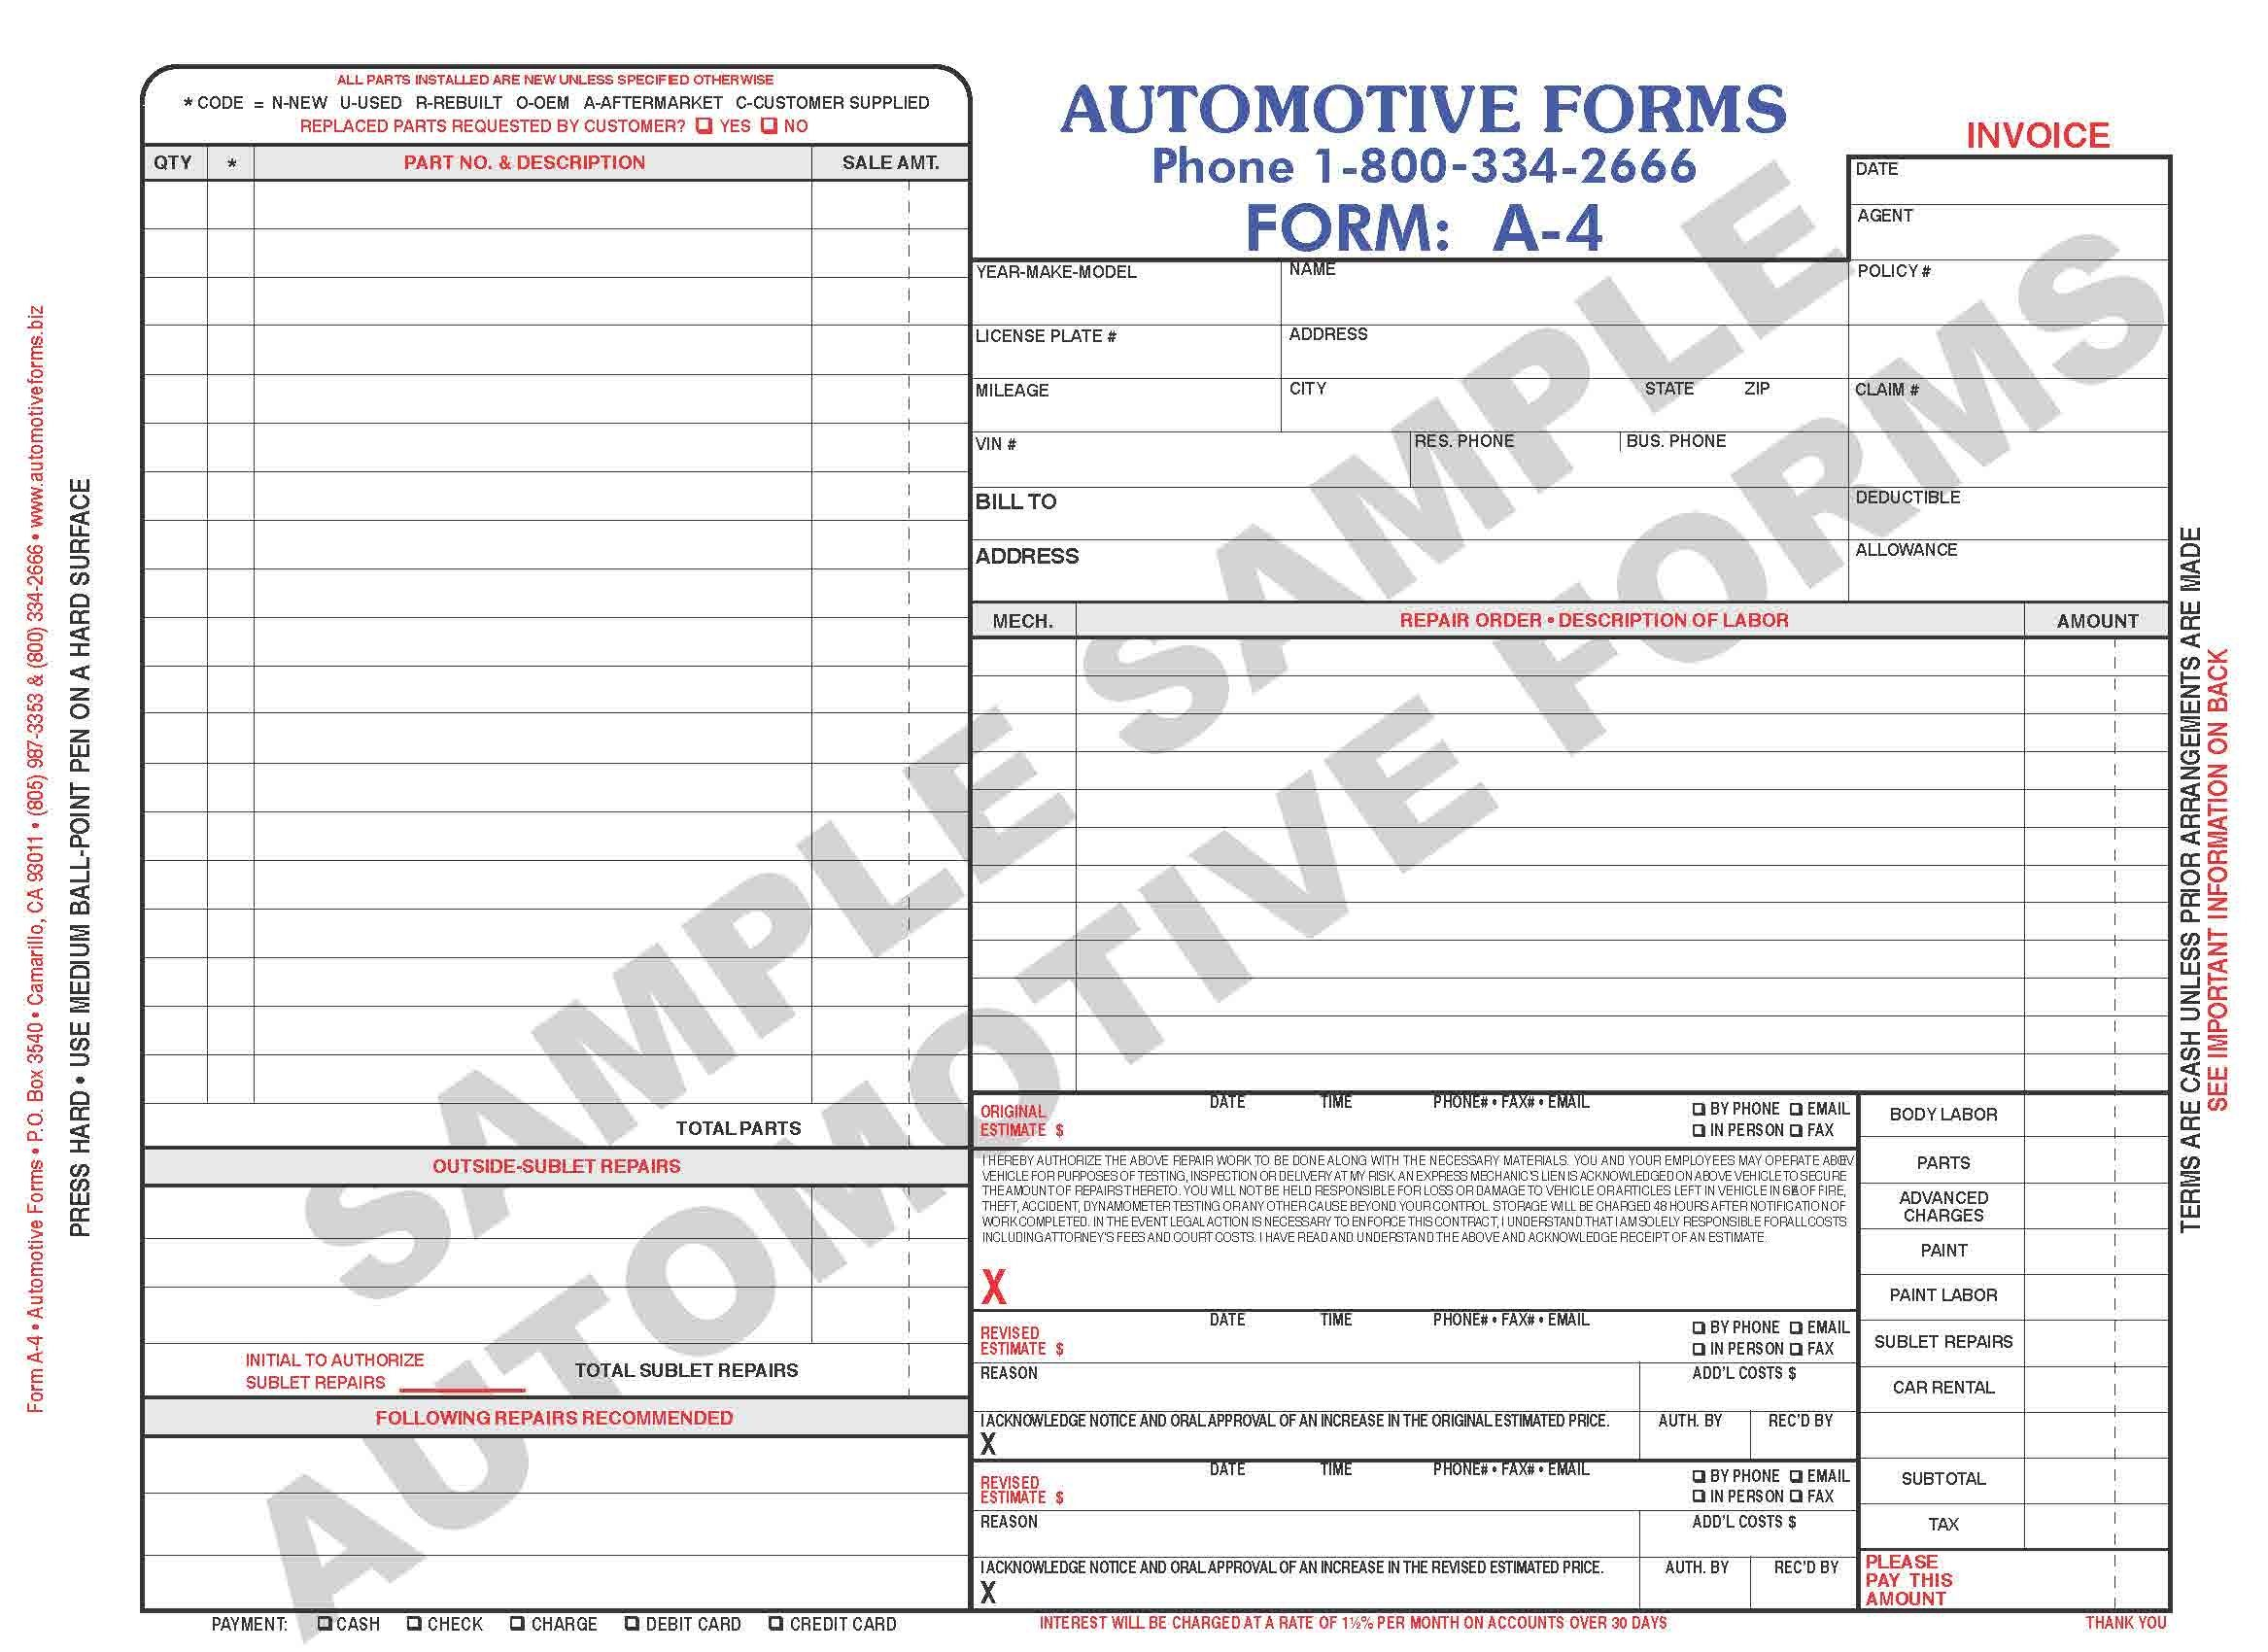 Body Shop Invoice Body Shop Invoice Template Invoice Pinterest - What is the invoice price on a car online vapor store